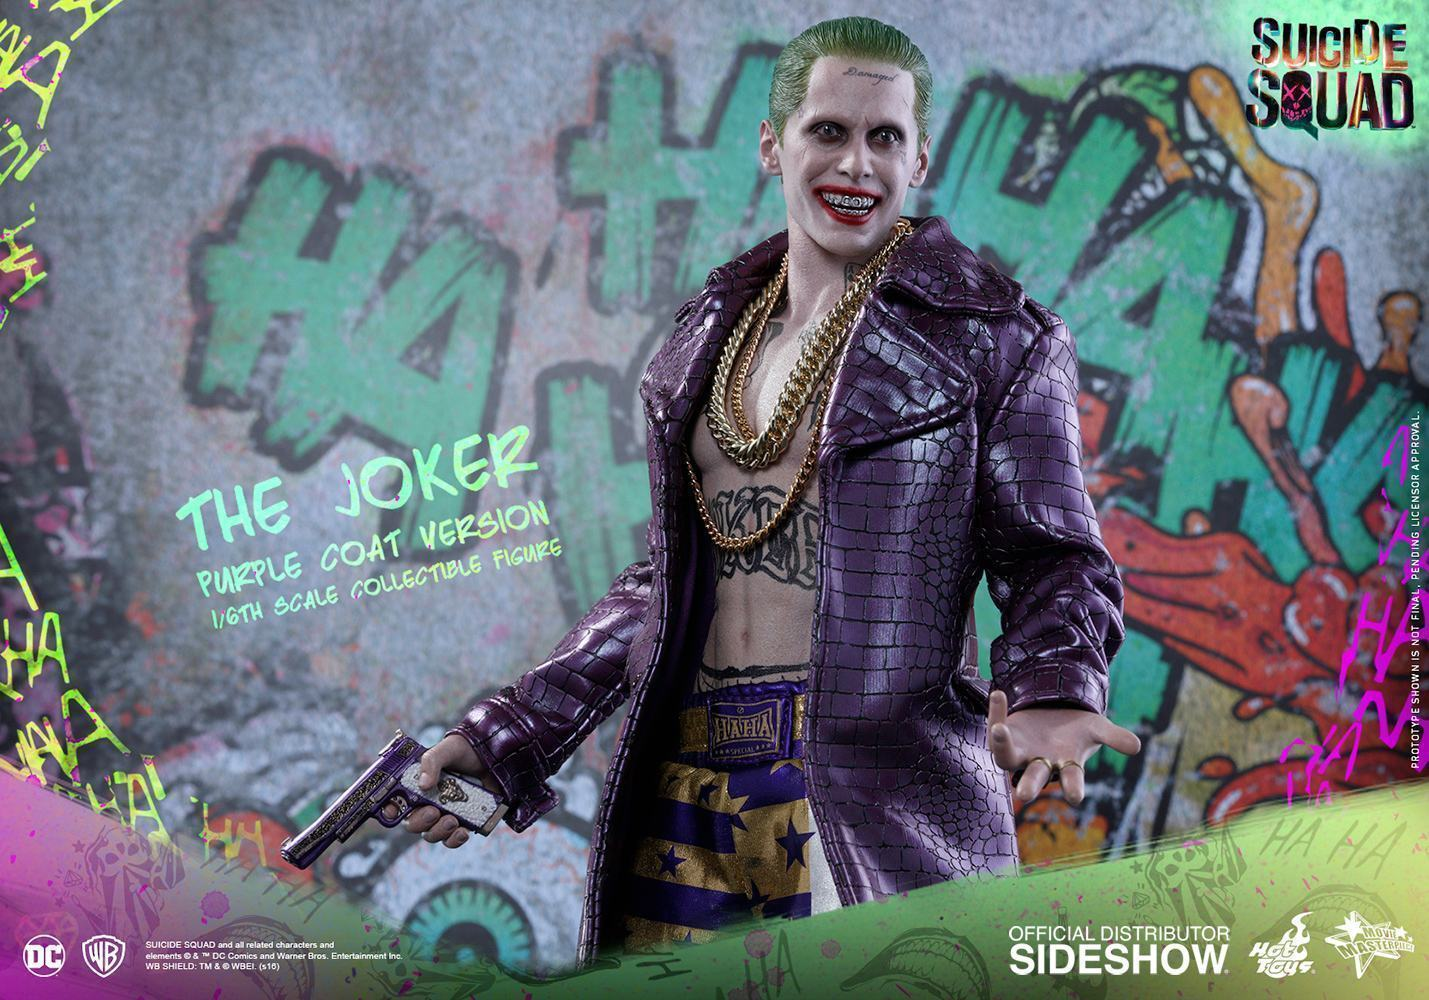 The-Joker-Purple-Coat-Ver-Suicide-Squad-Collectible-Figure-Hot-Toys-11